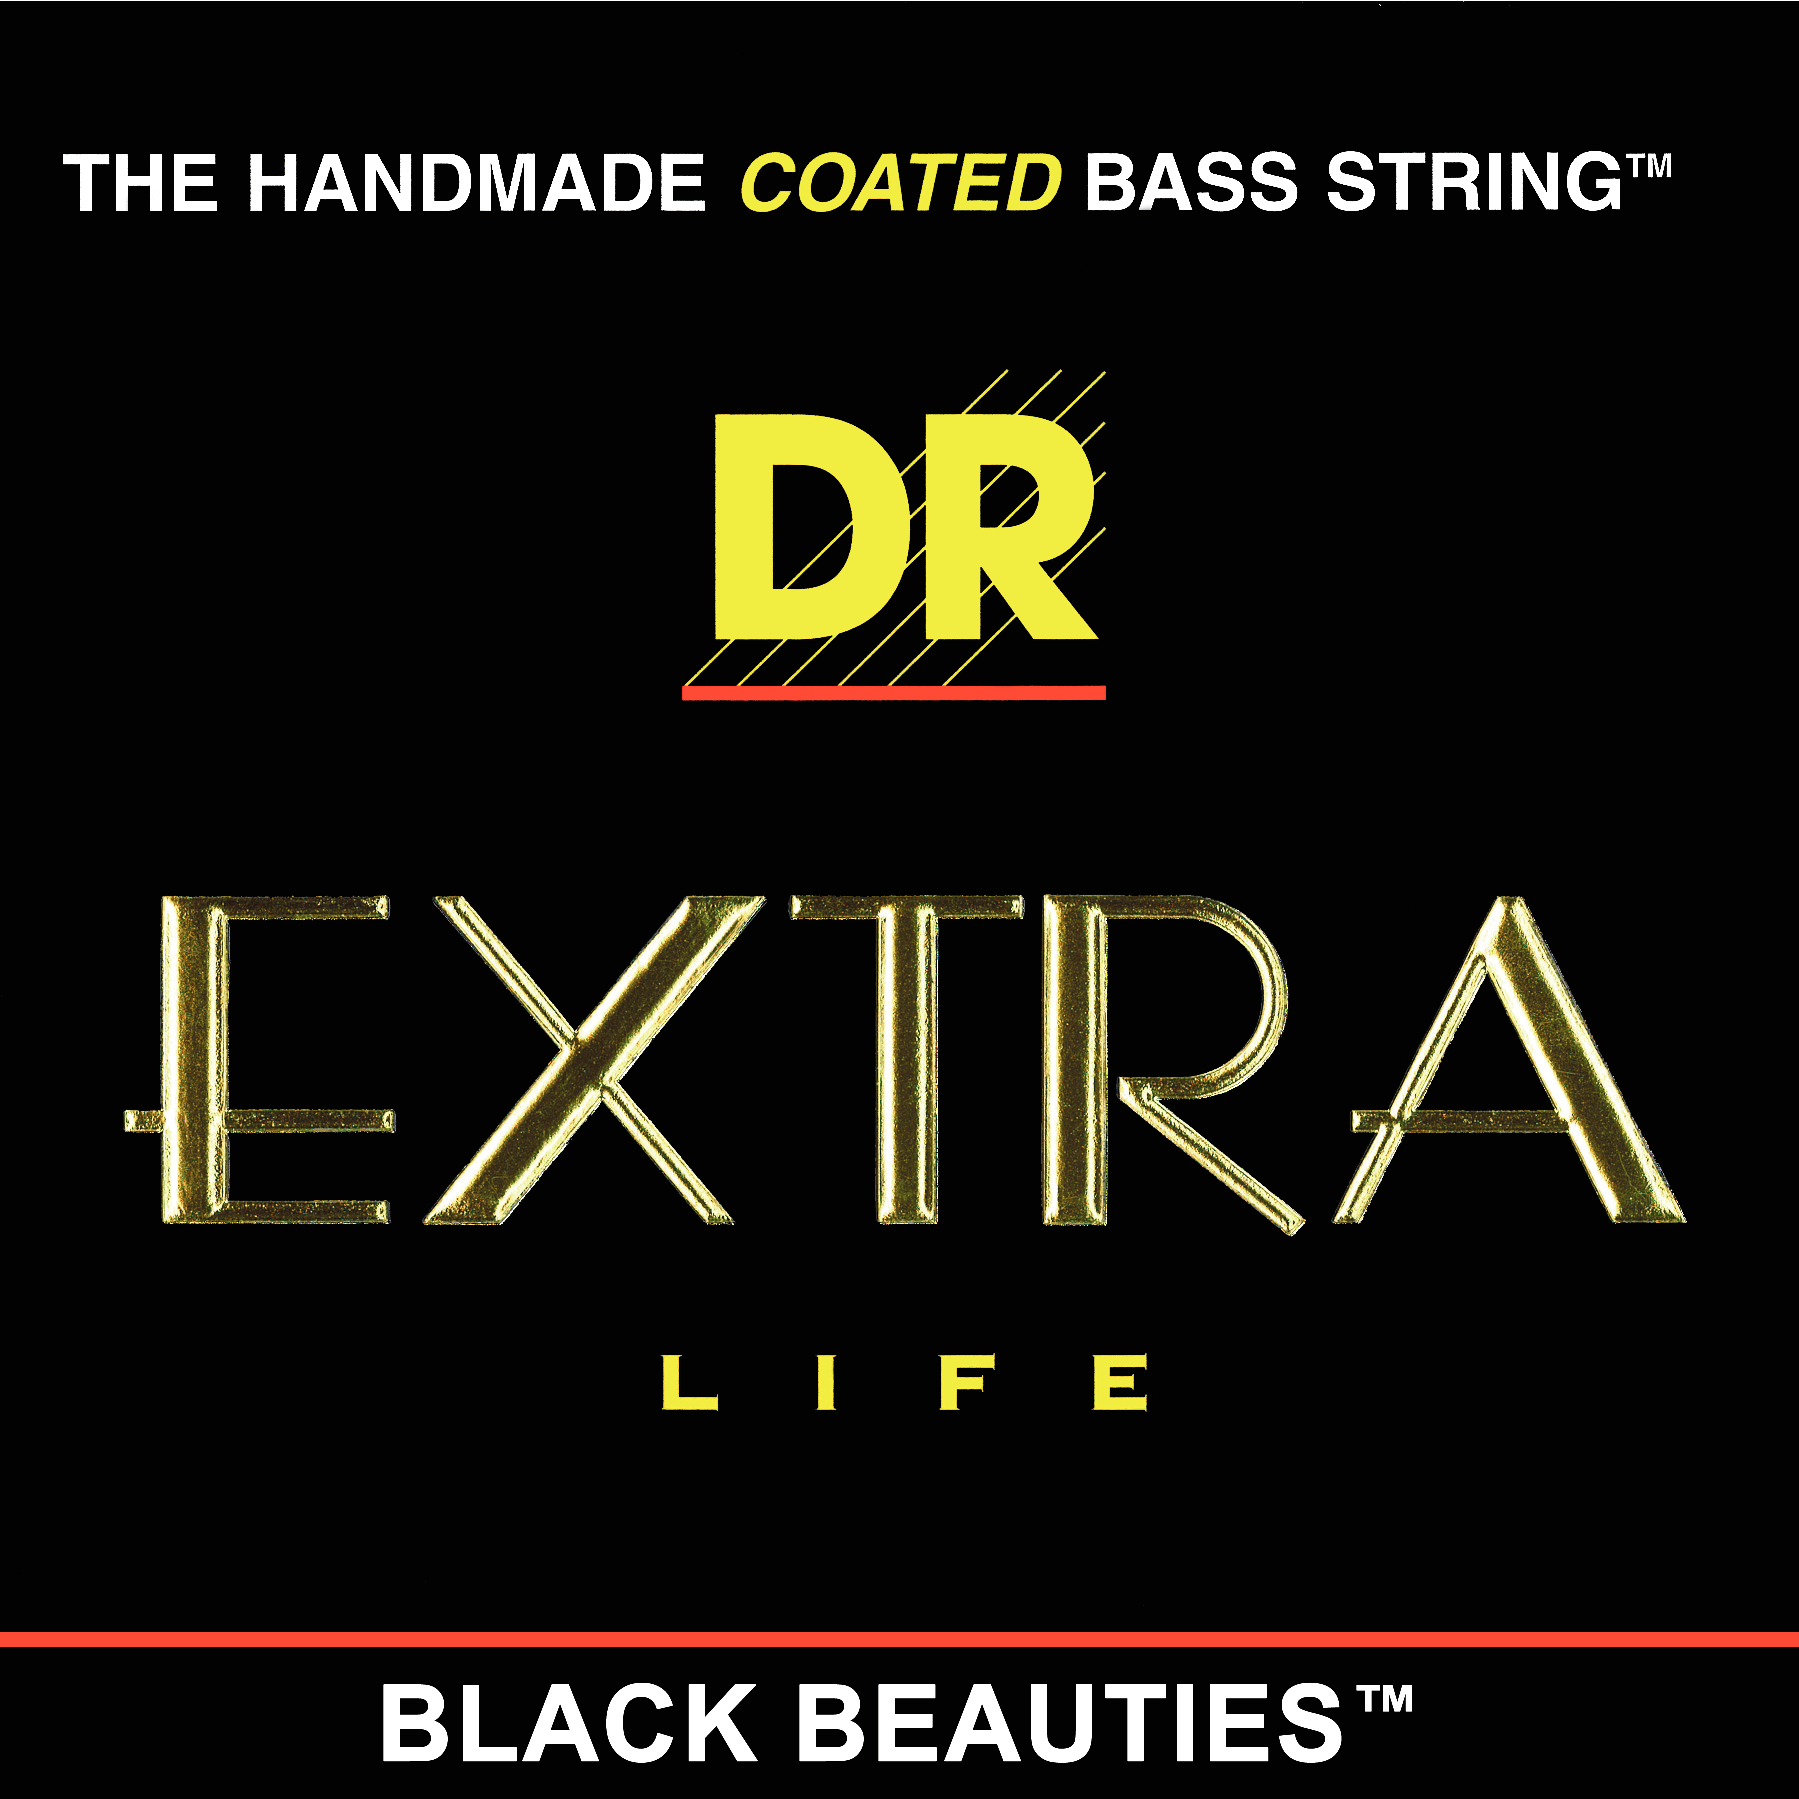 Extra Black Beauties Heavy (.050 - .110), DR B EXBK BKB-50